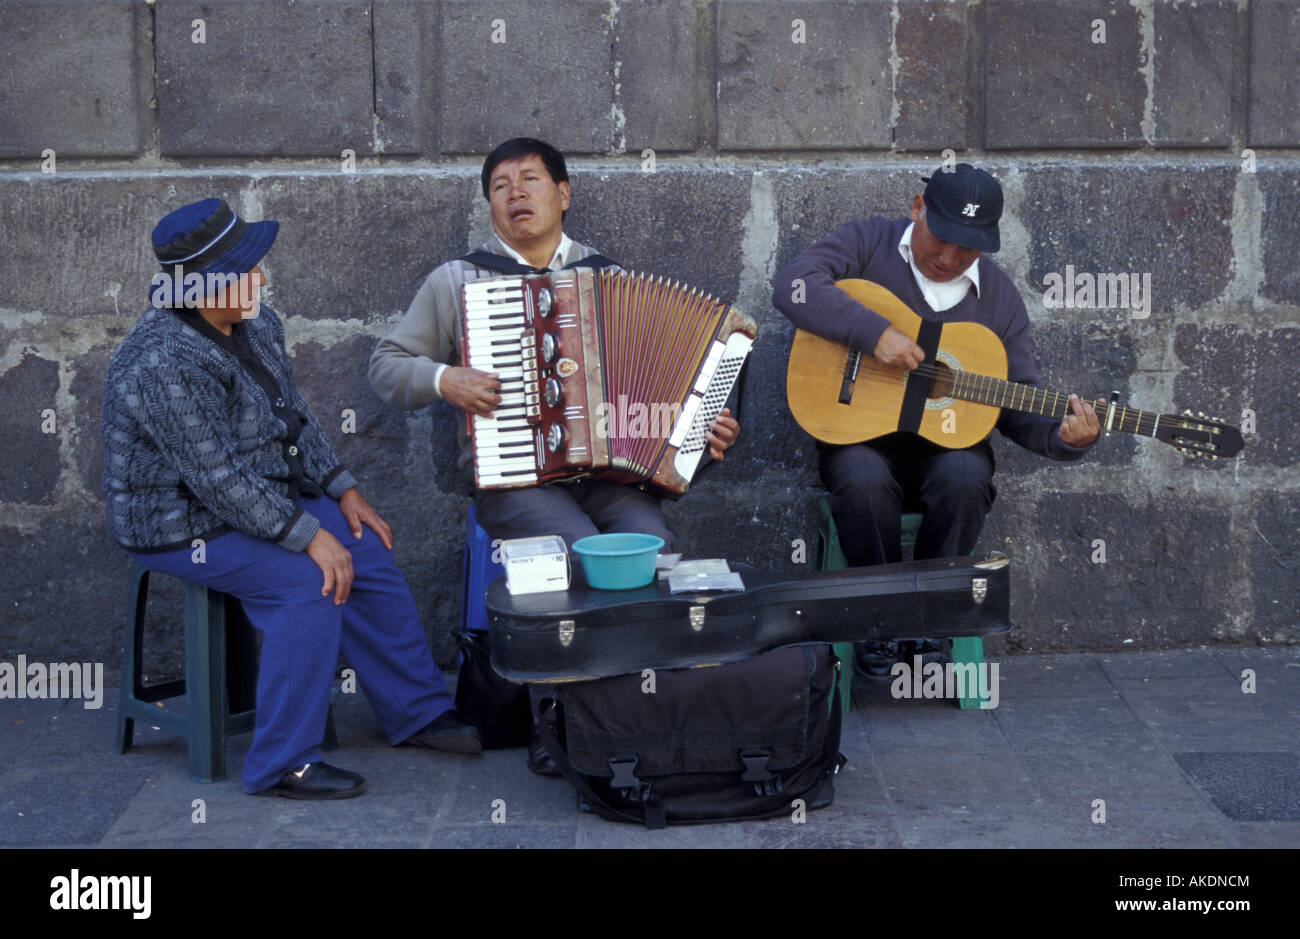 three-street-musicians-performing-in-the